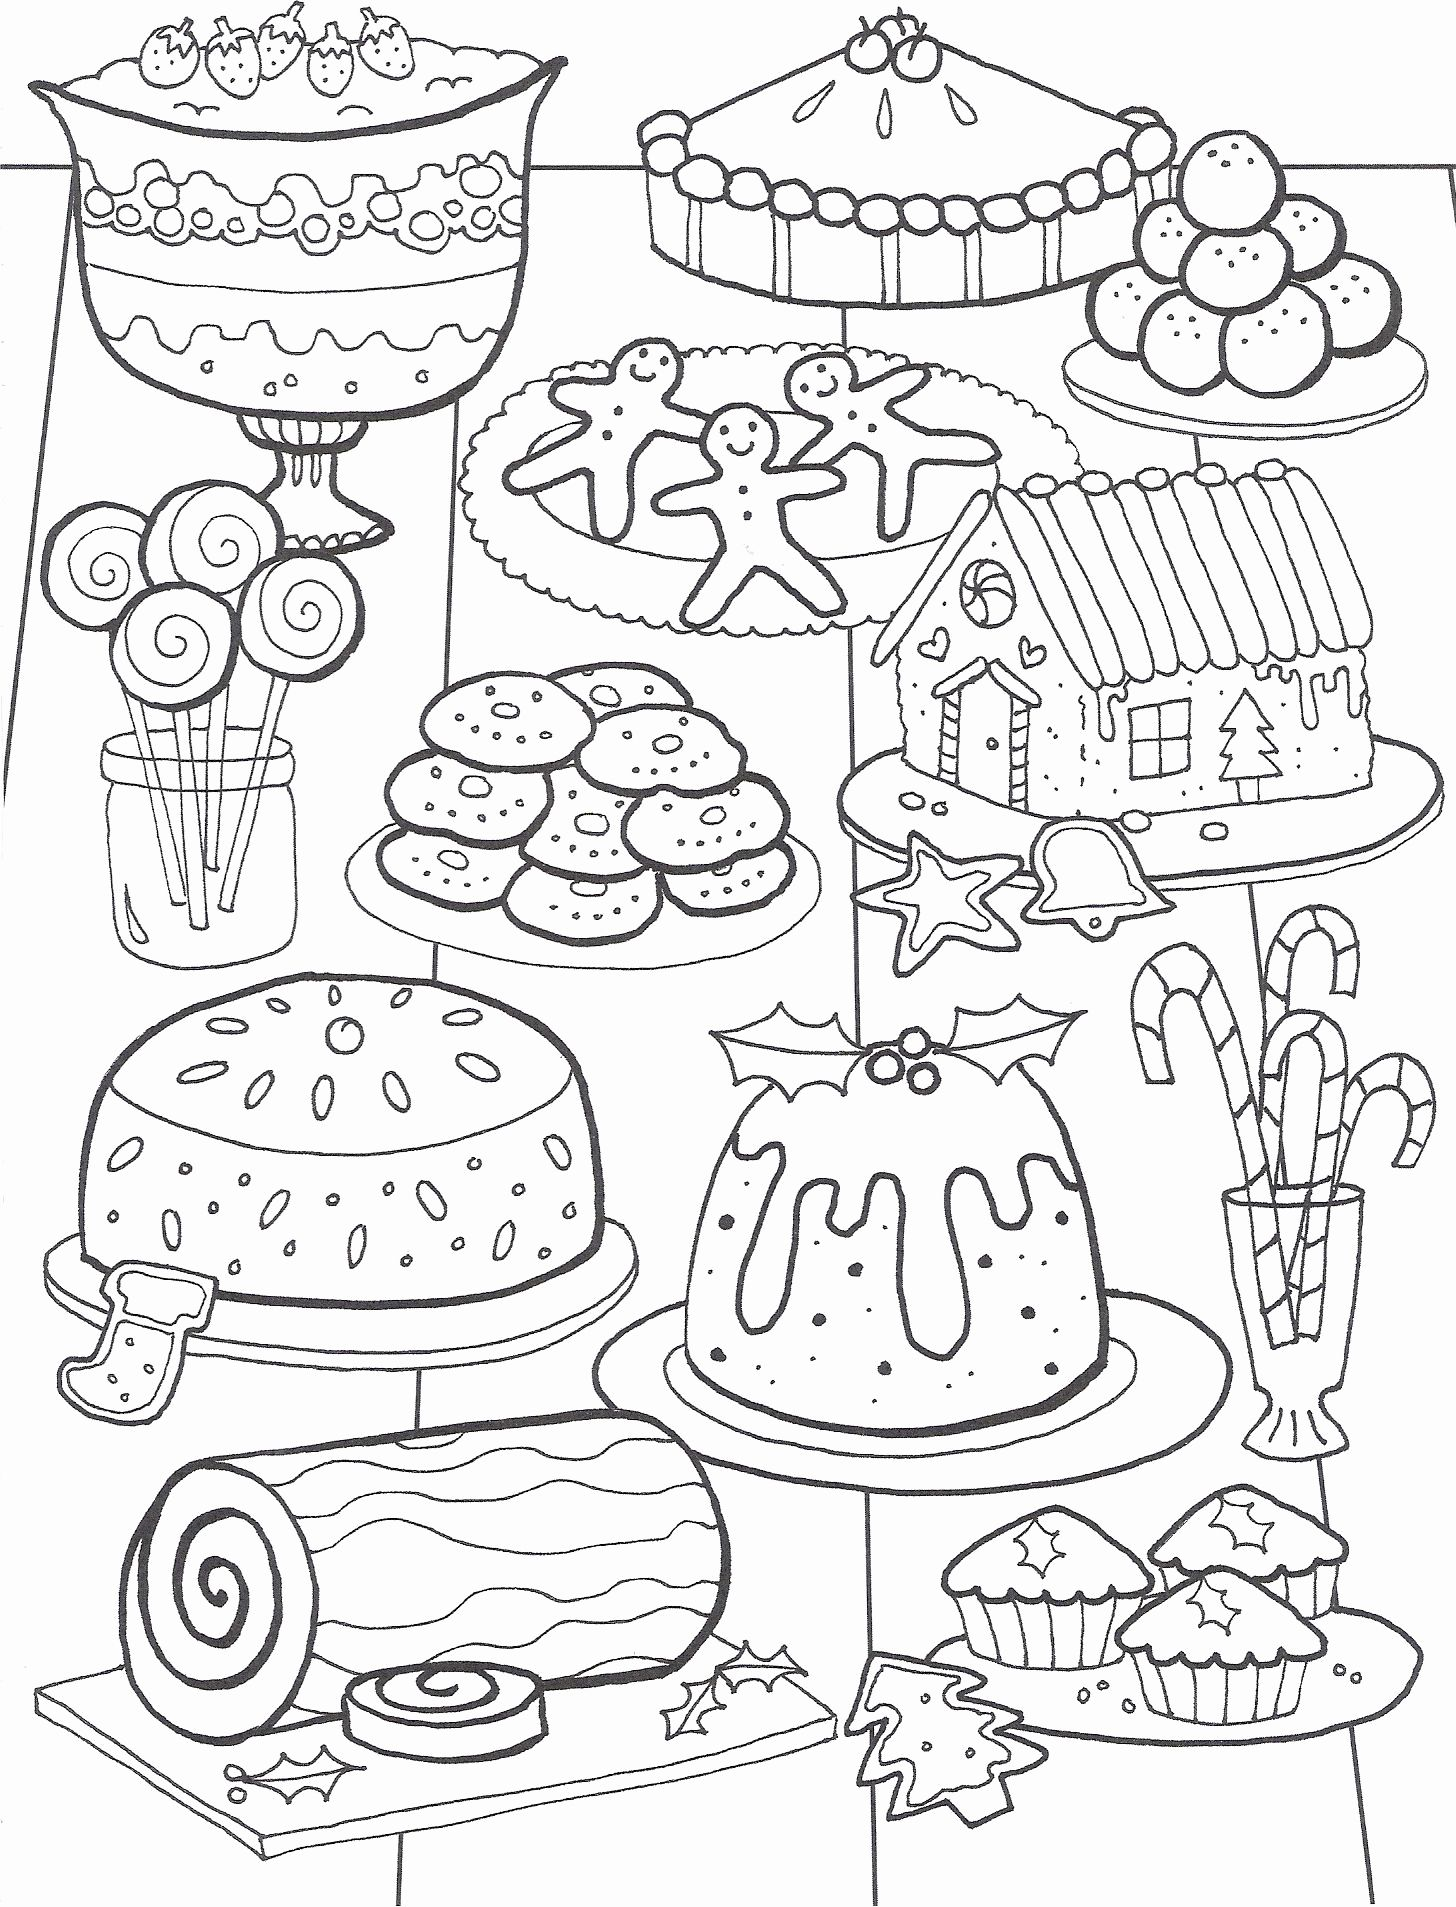 Fun Coloring Pages for Kids Food  Candy coloring pages, Christmas